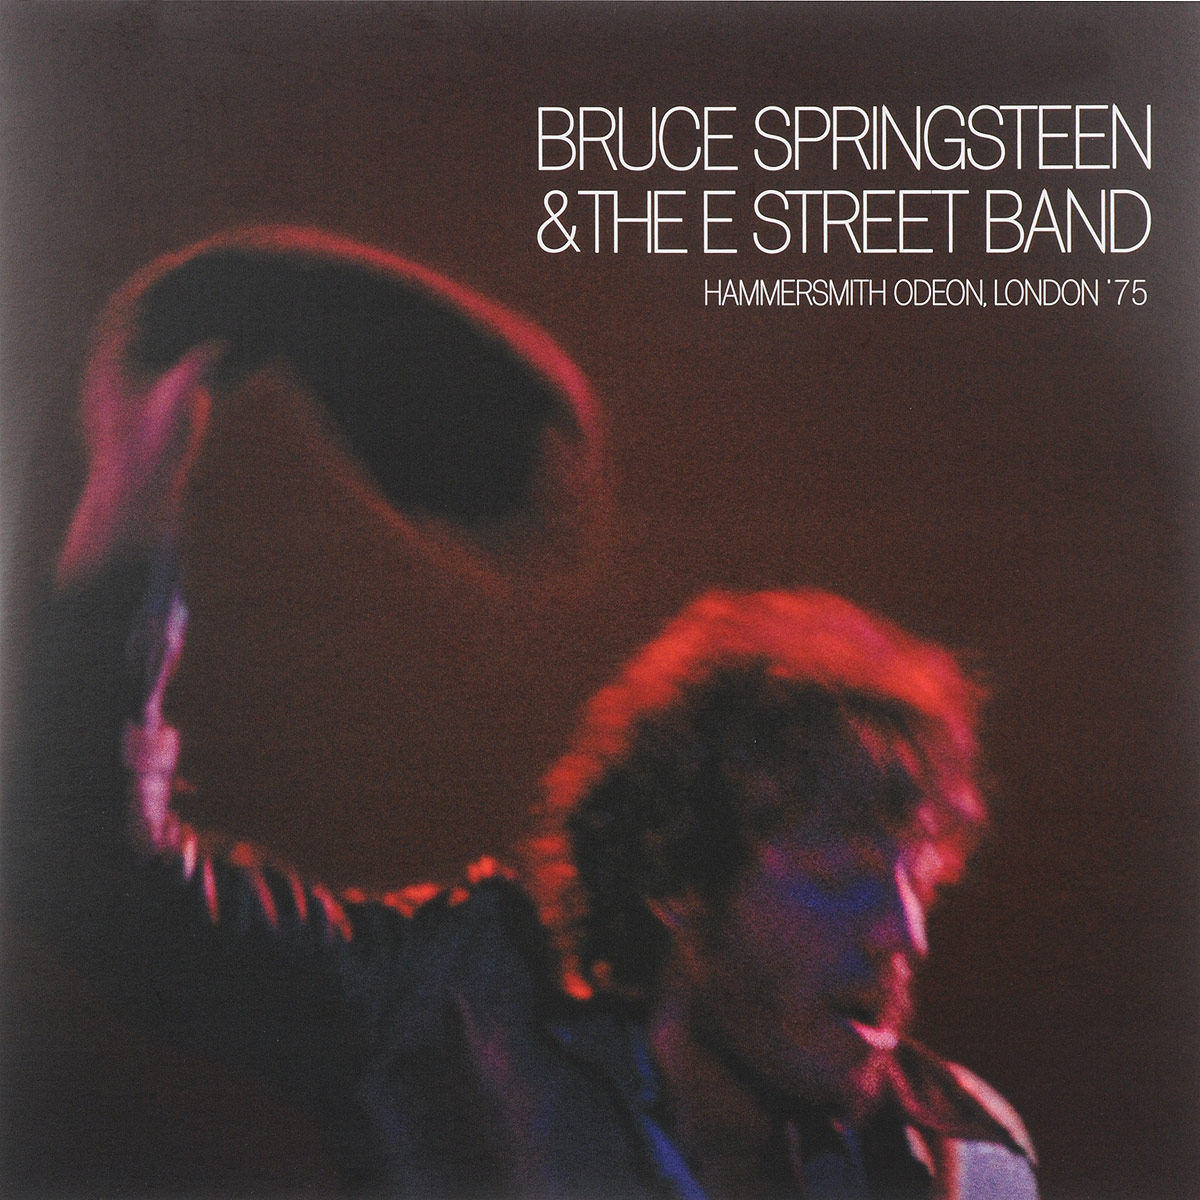 Брюс Спрингстин,The E Street Band Bruce Springsteen & The E Street Band. Hammersmith Odeon, London '75 (4 LP) signed tfboys jackson autographed photo 6 inches freeshipping 4 versions 082017 e